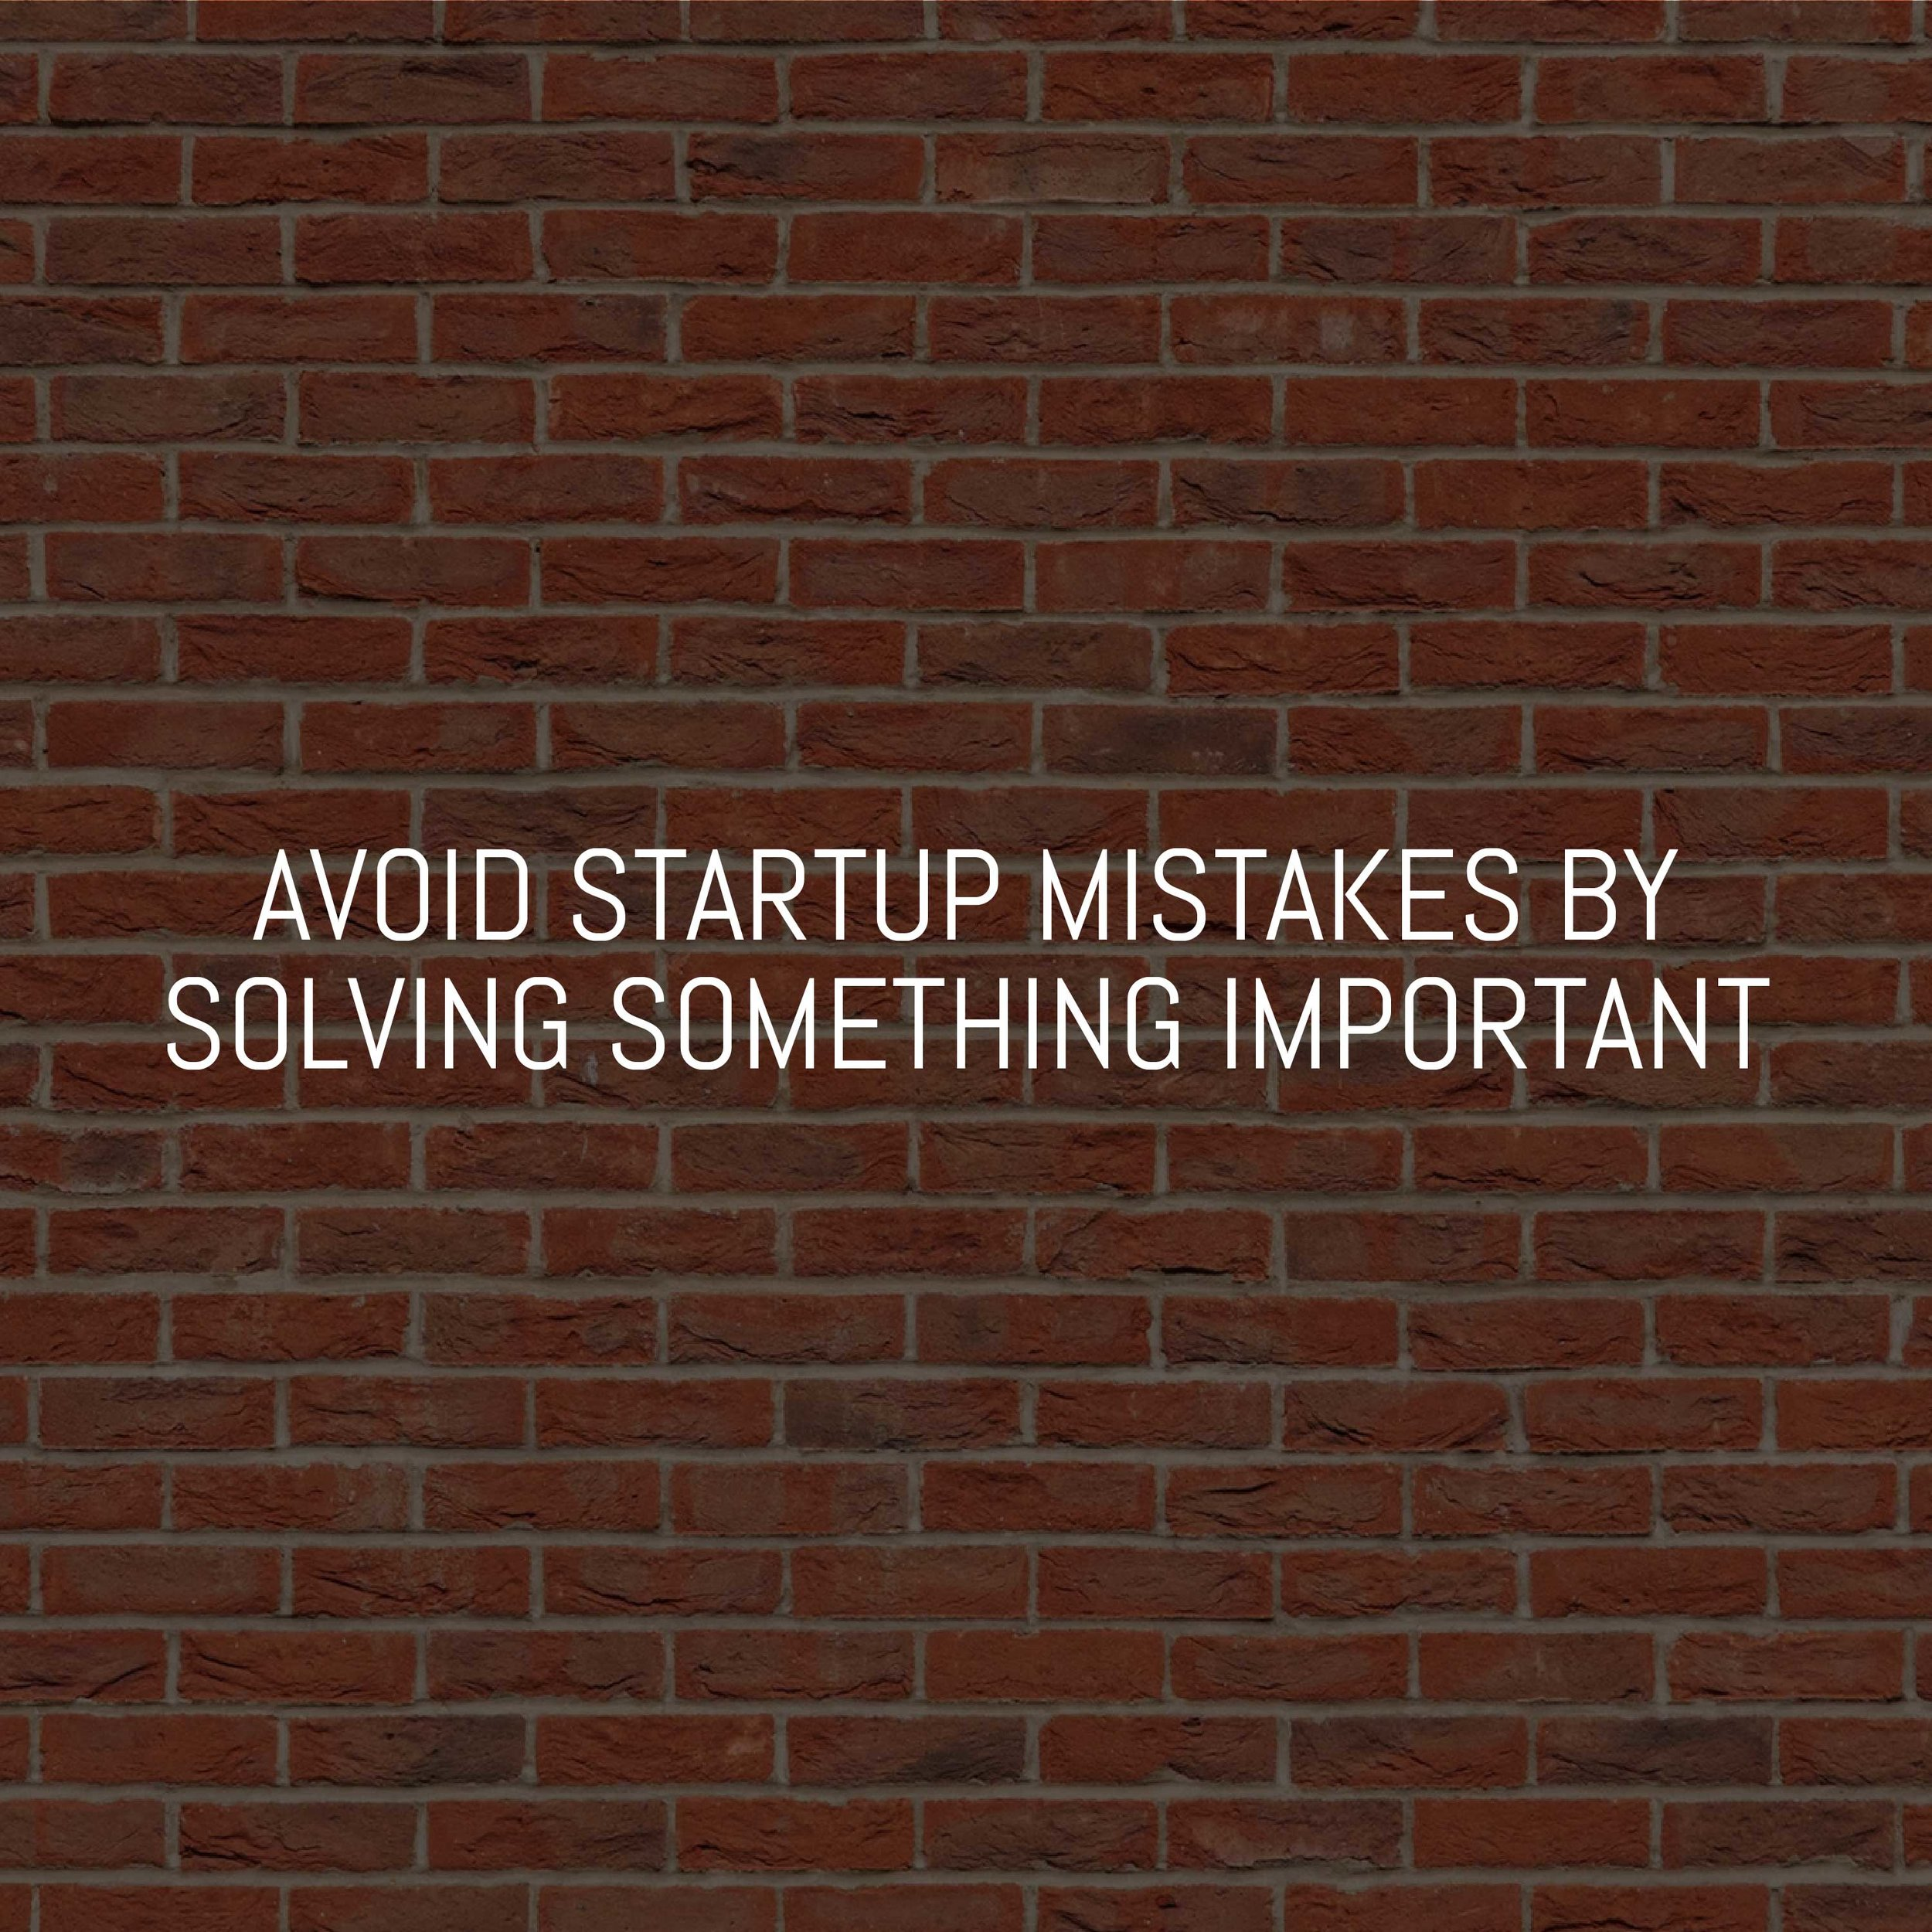 AVOID-CLASSIC-STARTUP-MISTAKES-BY-SOLVING-SOMETHING-IMPORTANT.jpg